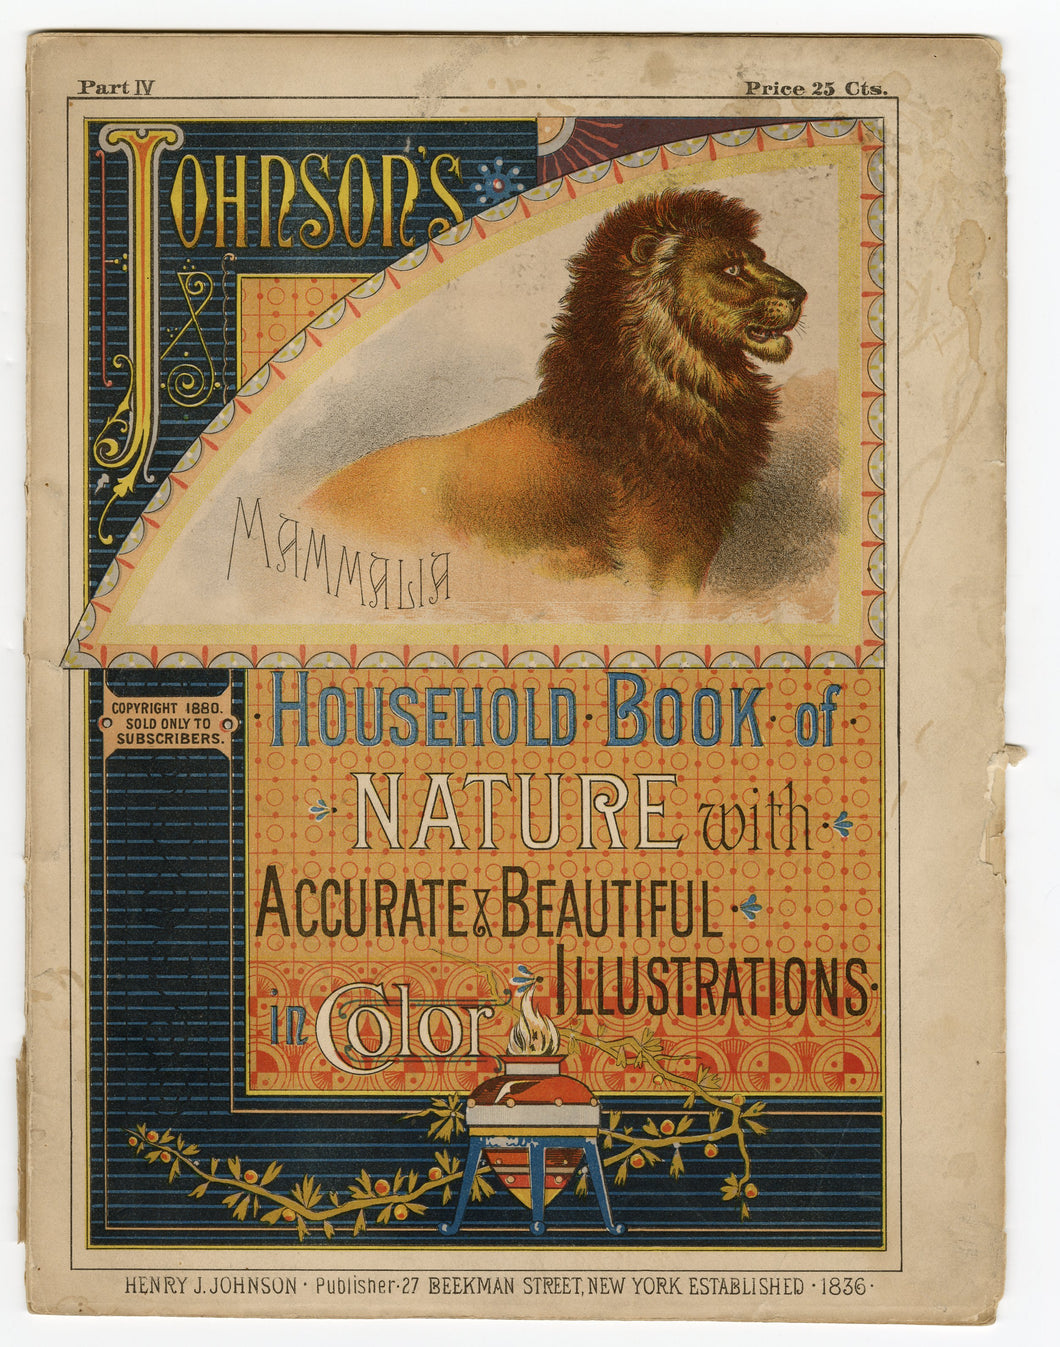 1880 JOHNSON'S HOUSEHOLD BOOK OF NATURE, Mammlia, Illustrated